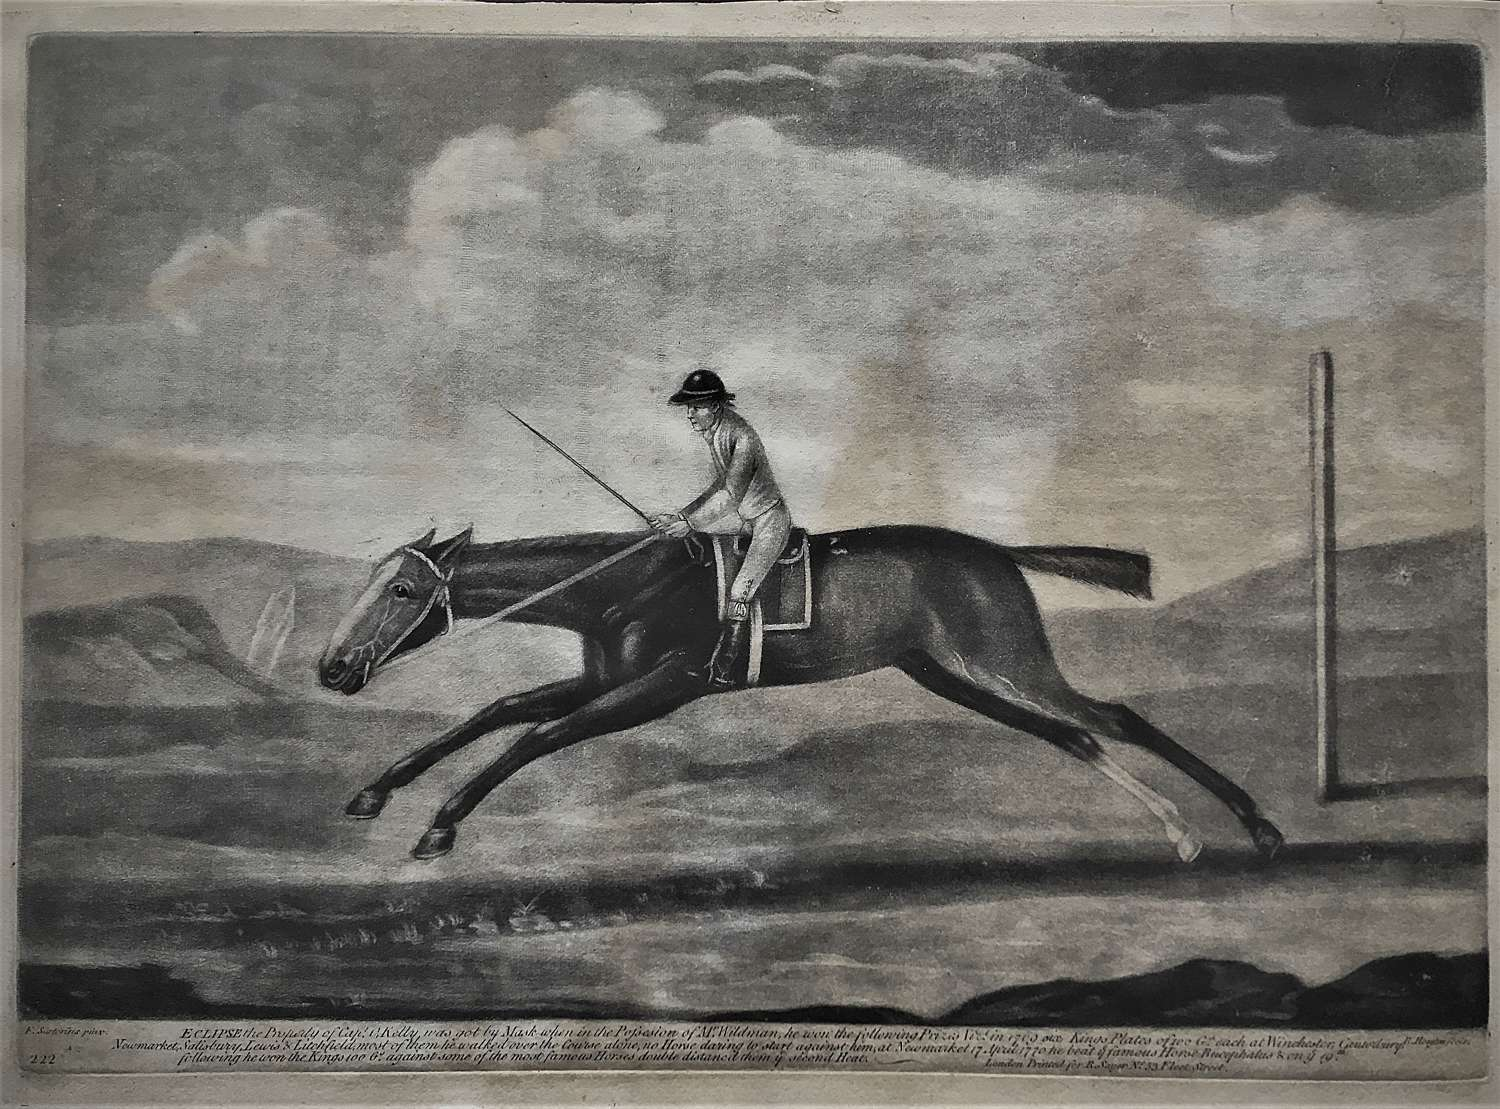 The racehorse